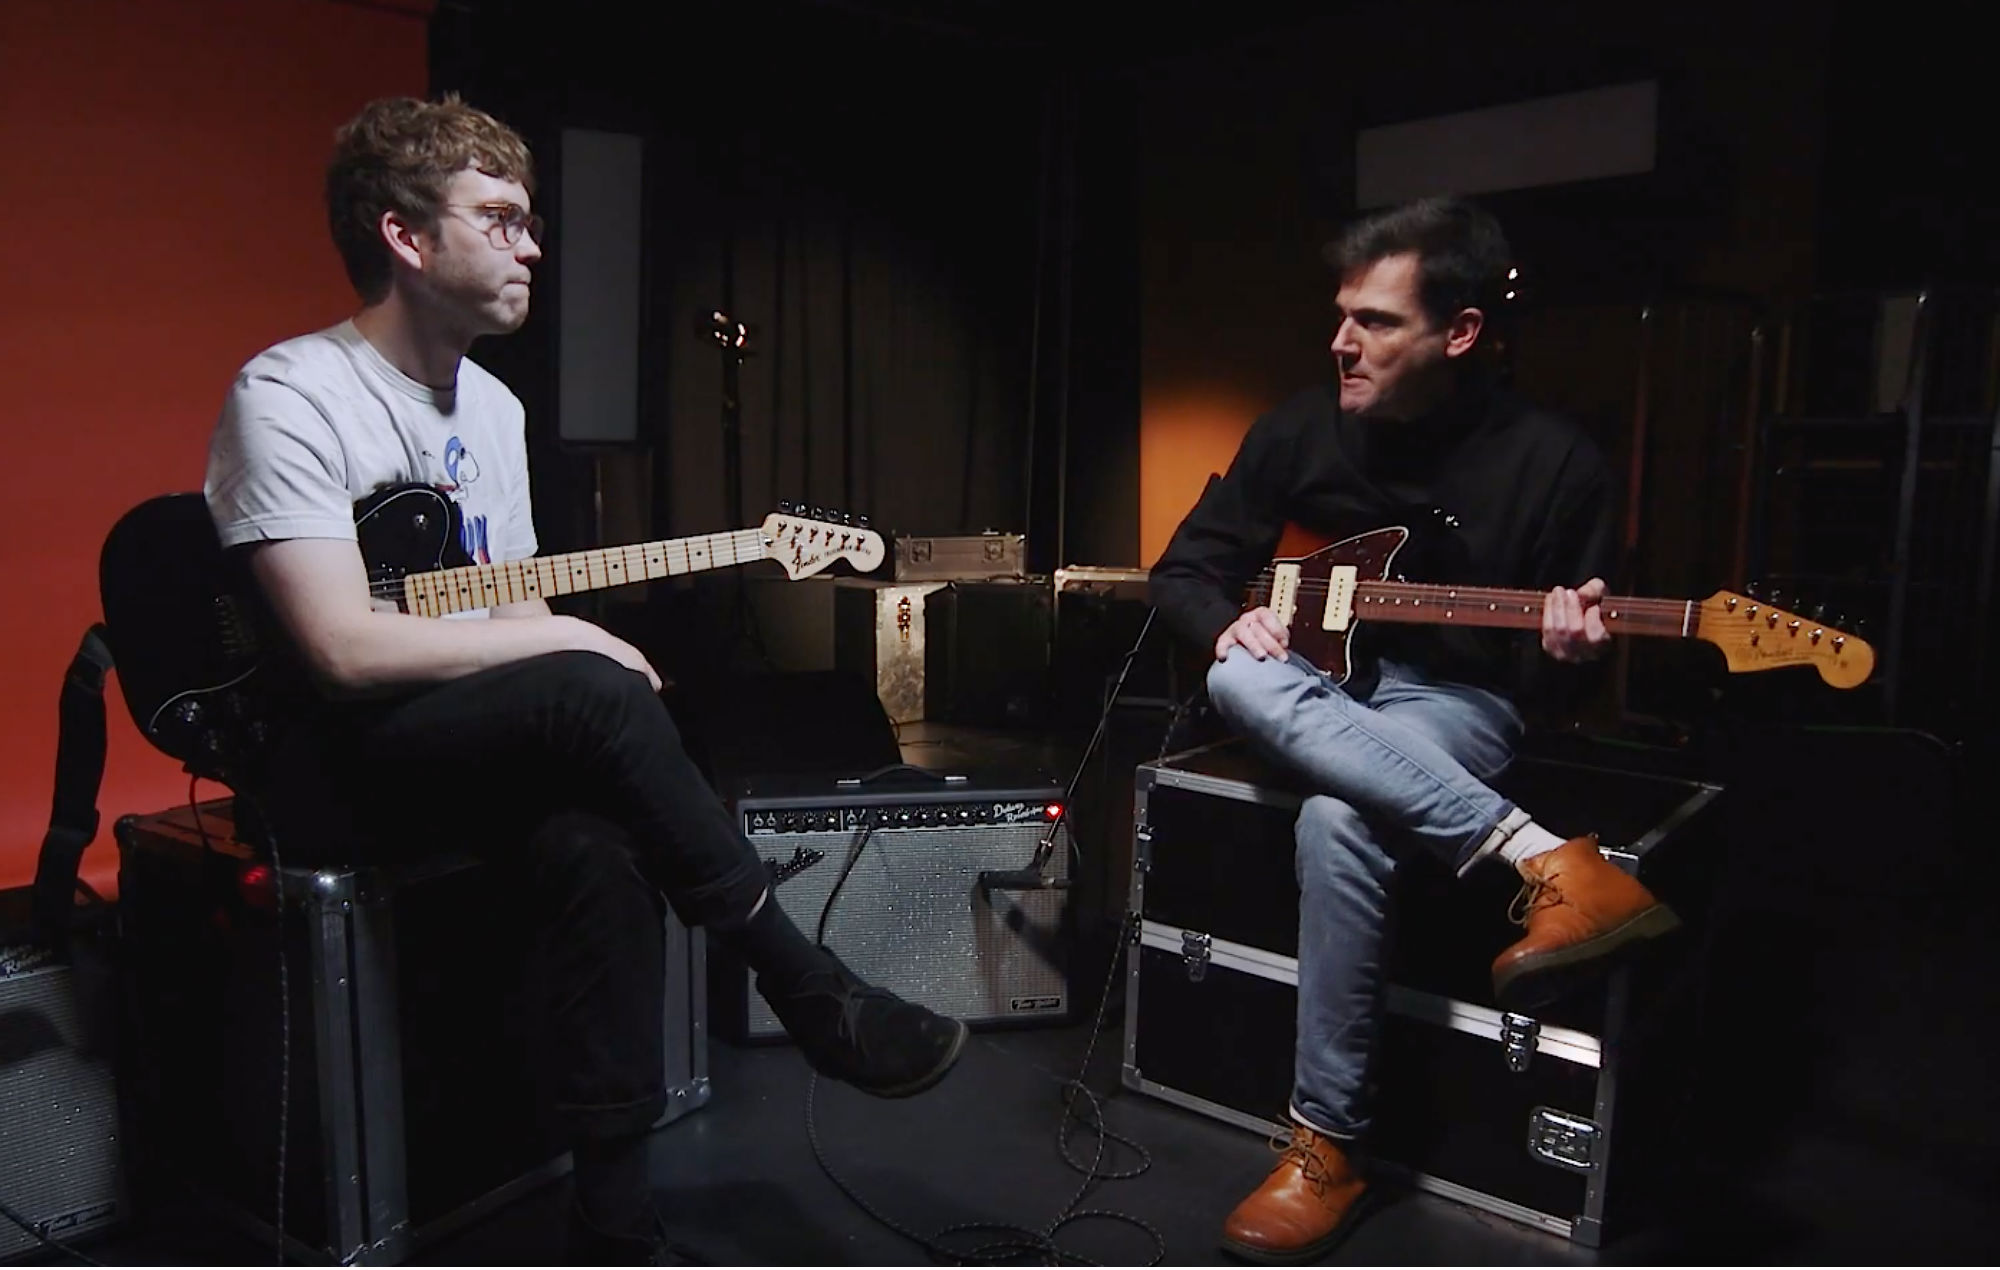 Check out Ollie from Heavy Lungs' guitar masterclass in association with Fender Play